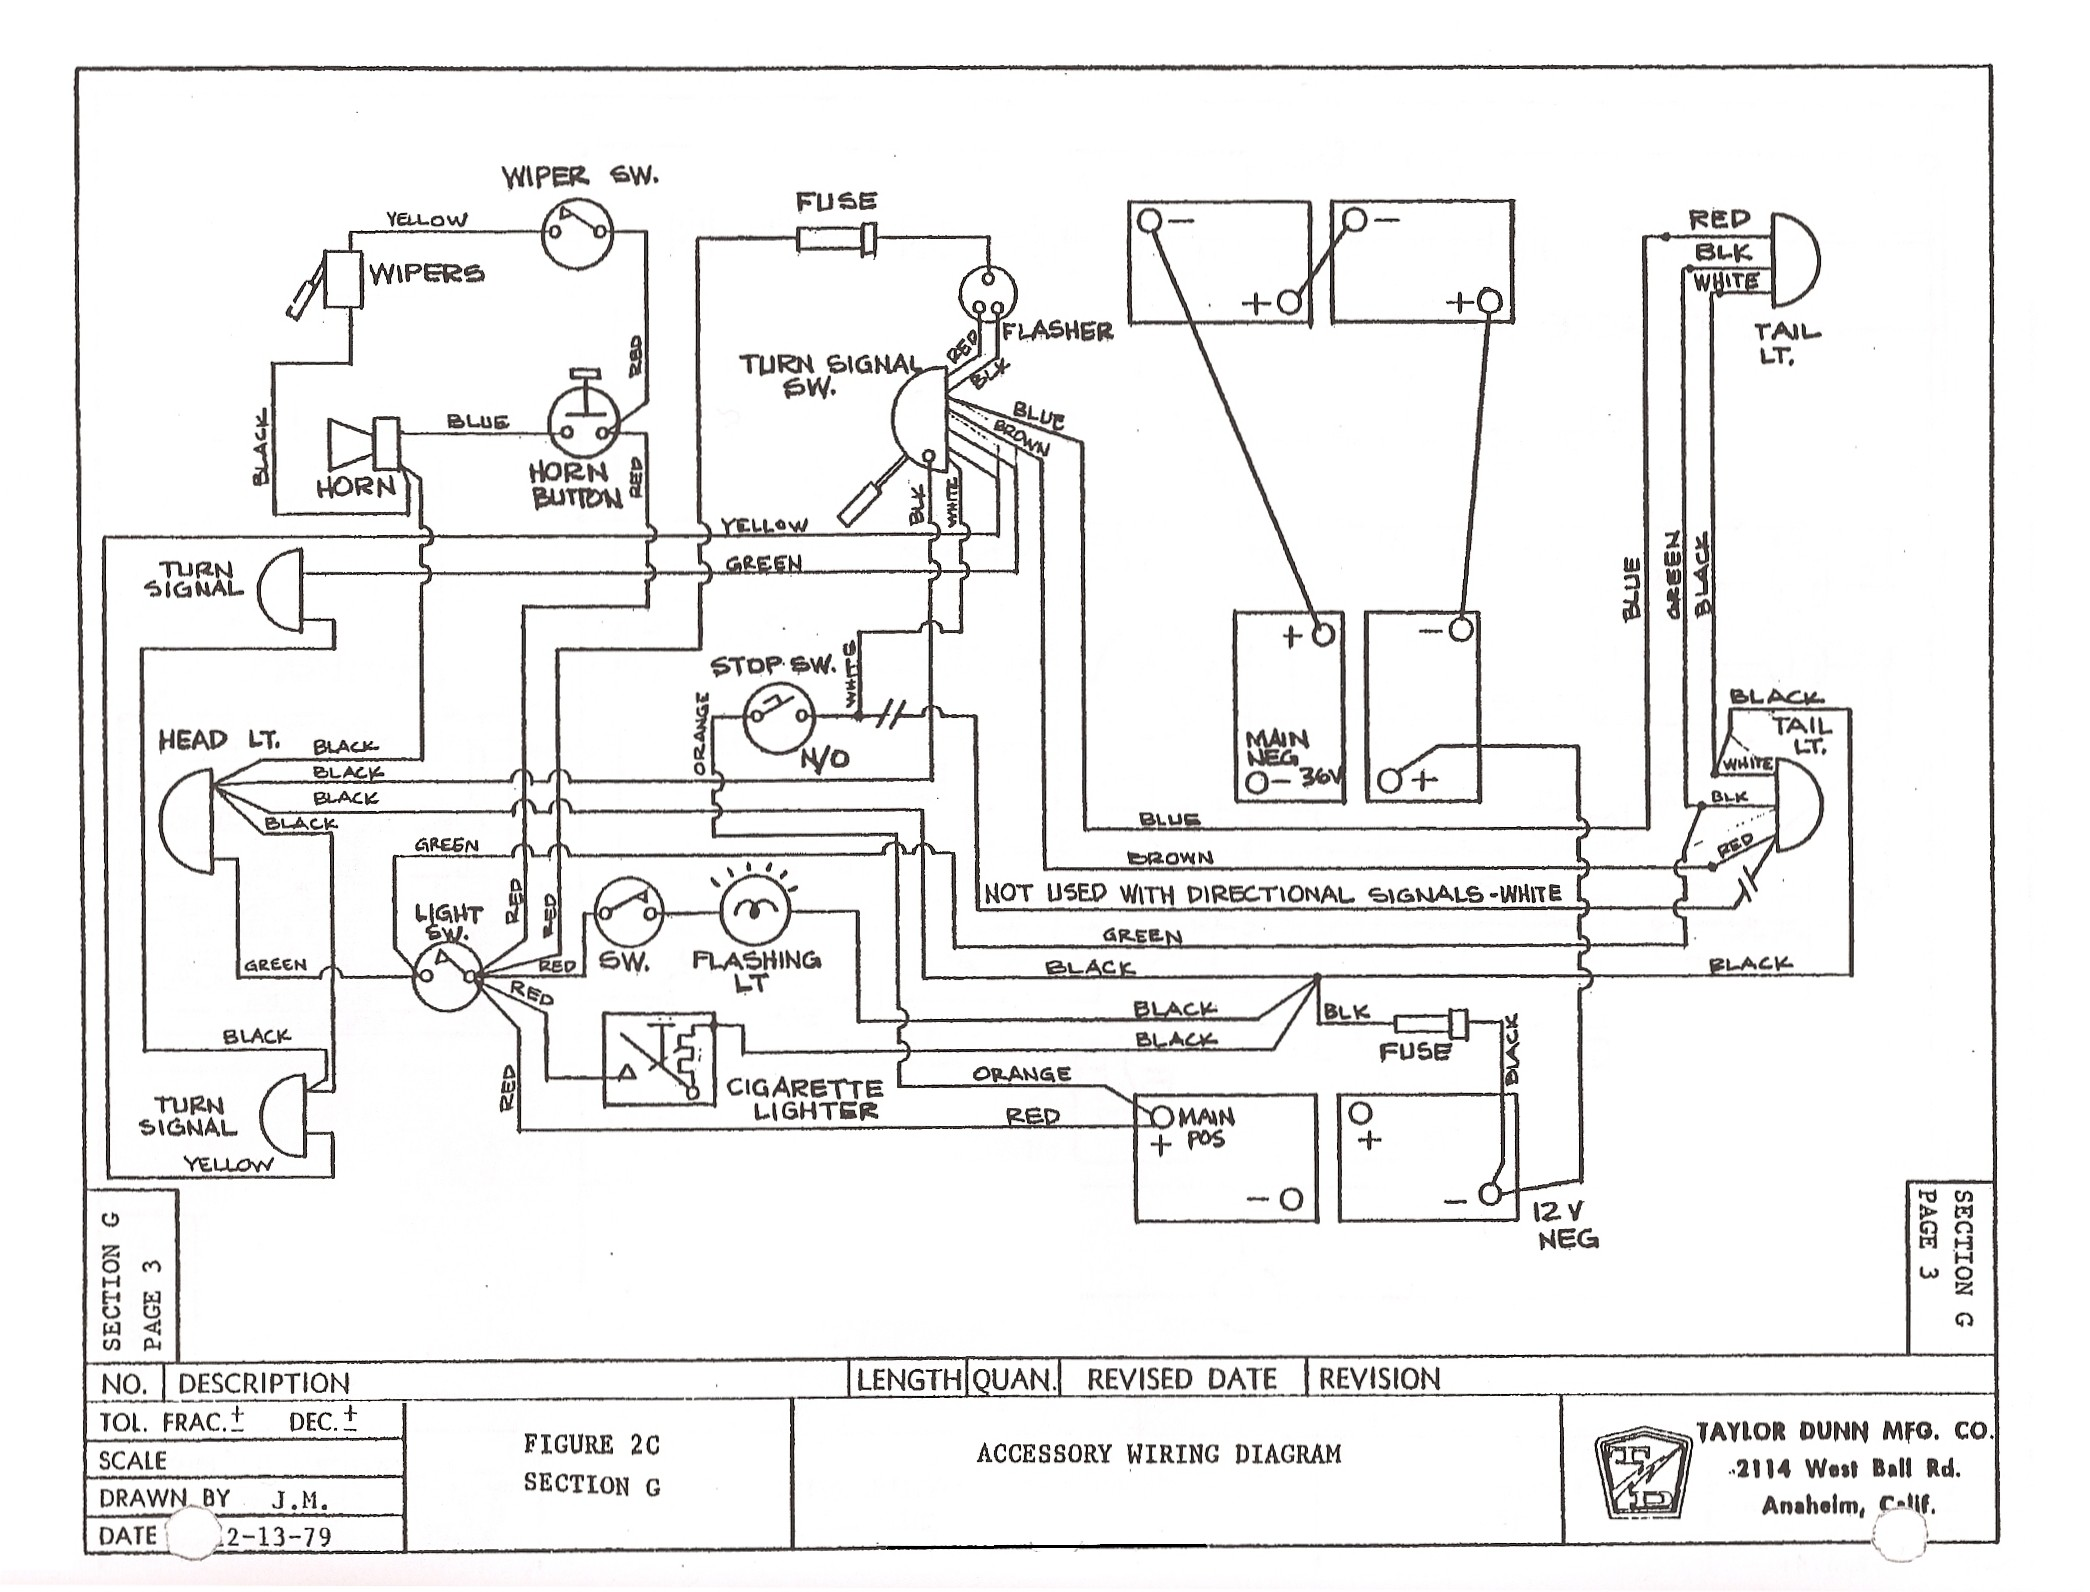 Parts Manual For Club Car Golf Cart 1963 Harley Davidson Wiring Diagrams Free Diagram Download